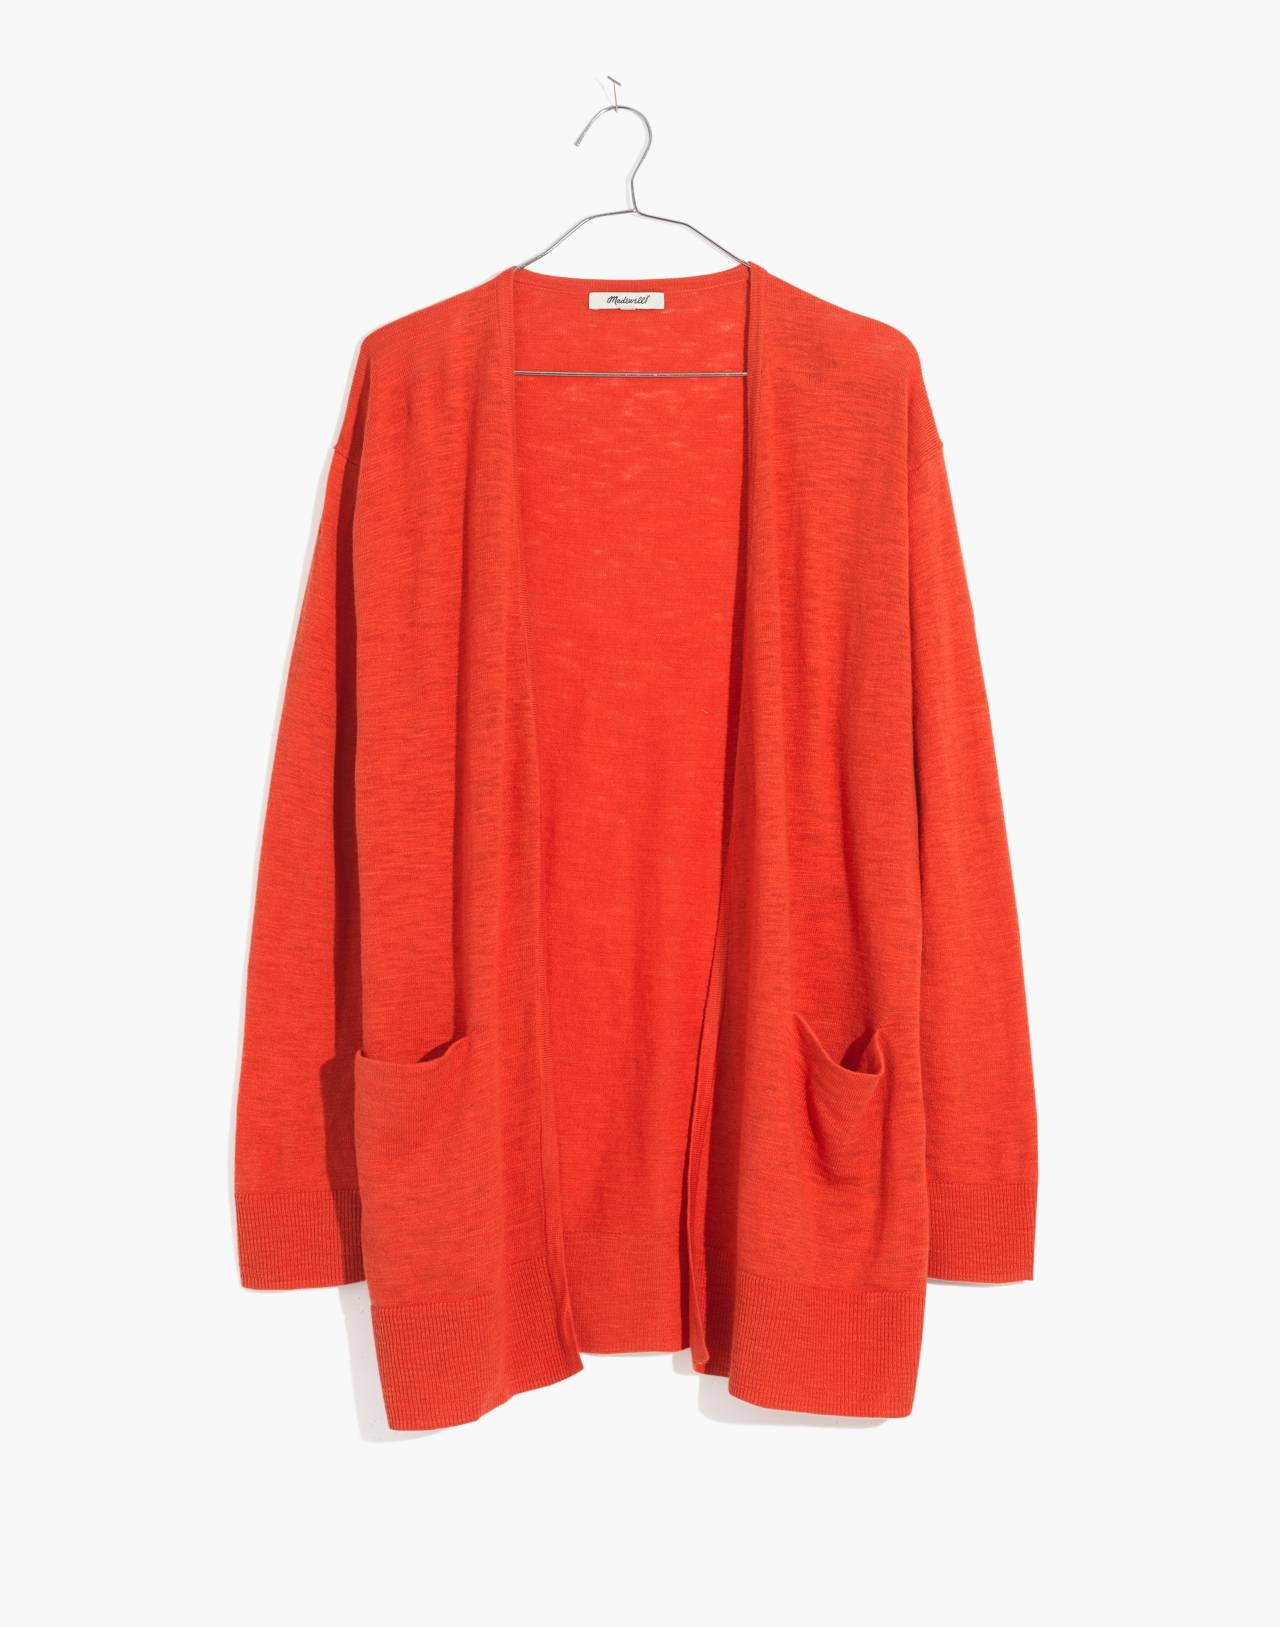 Summer Ryder Cardigan Sweater in coastal orange image 1